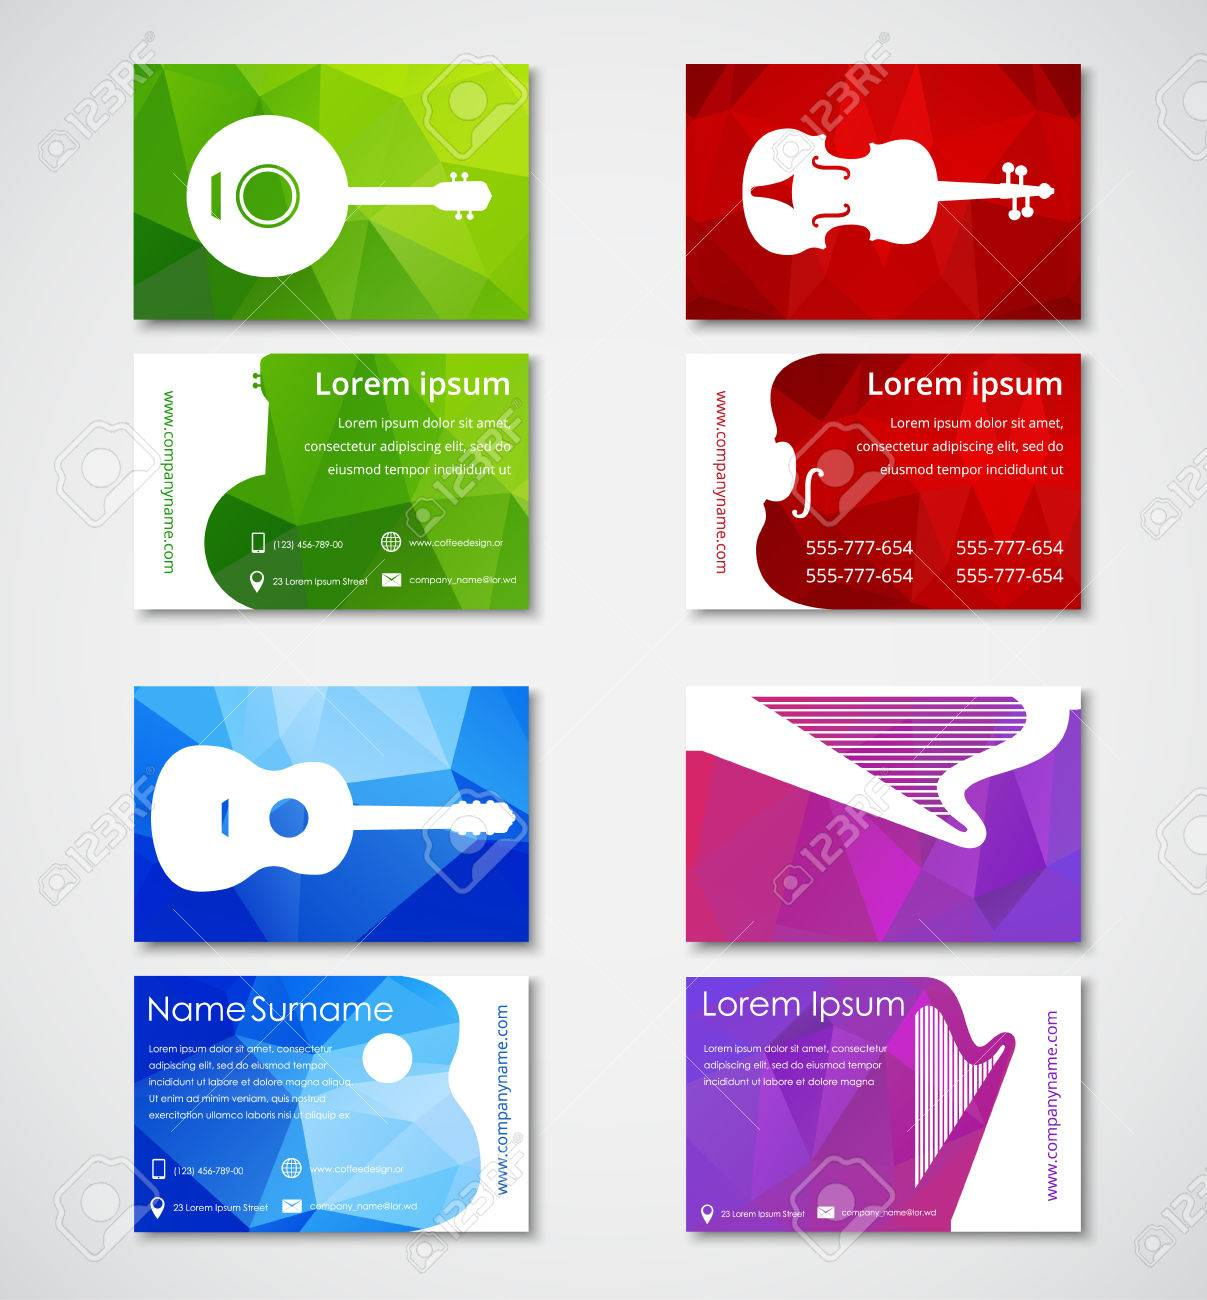 Design Of Business Cards For Musicians Or Music Stores. Polygonal ...